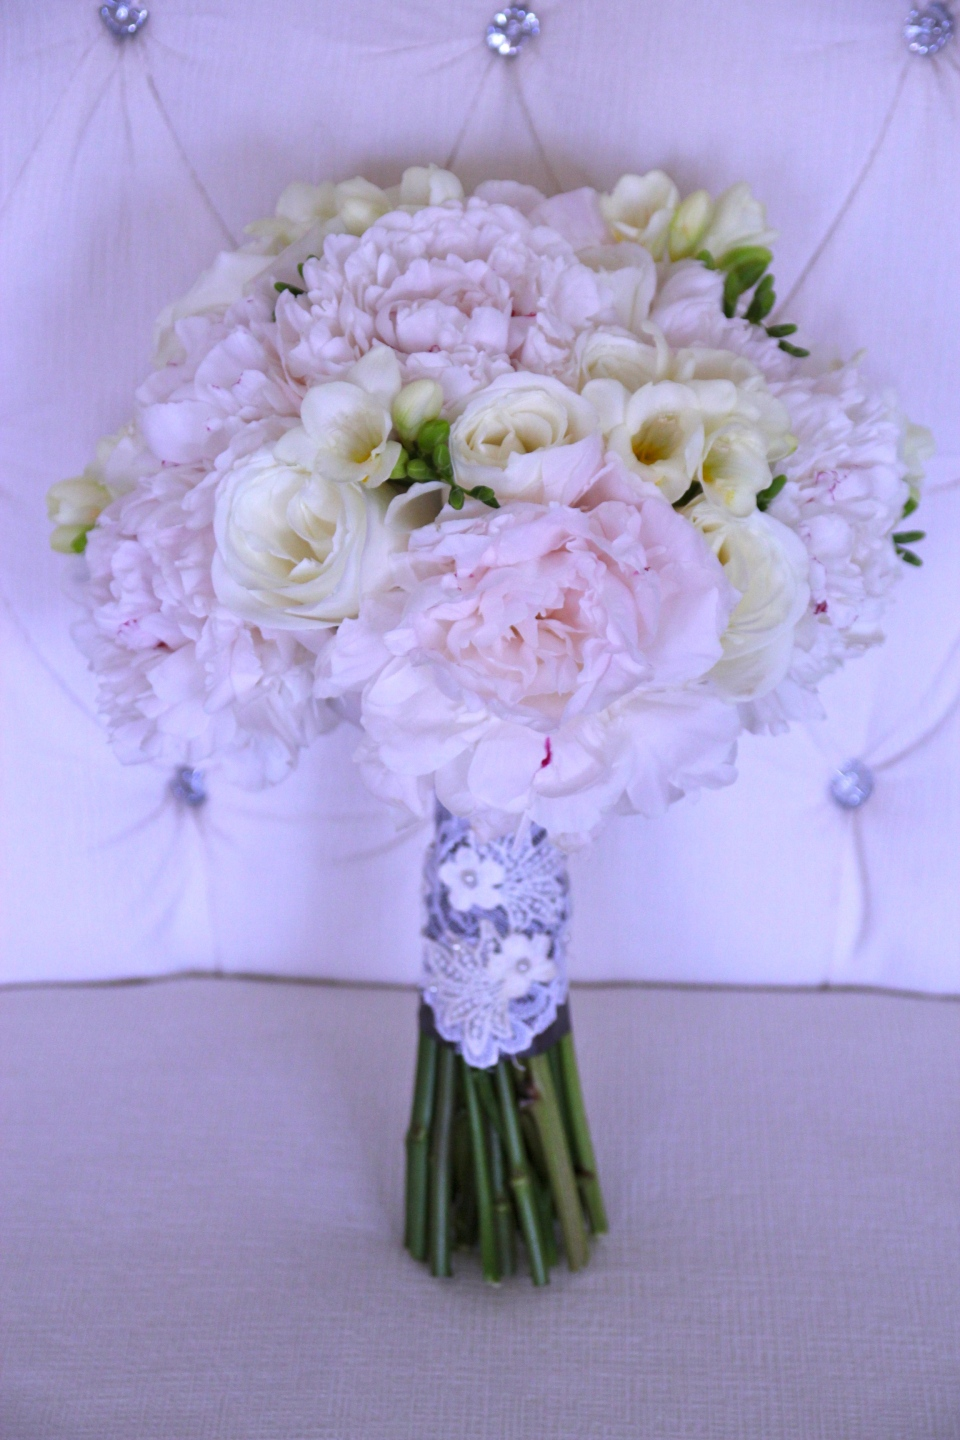 White bridal bouquet of peony, roses and freesia